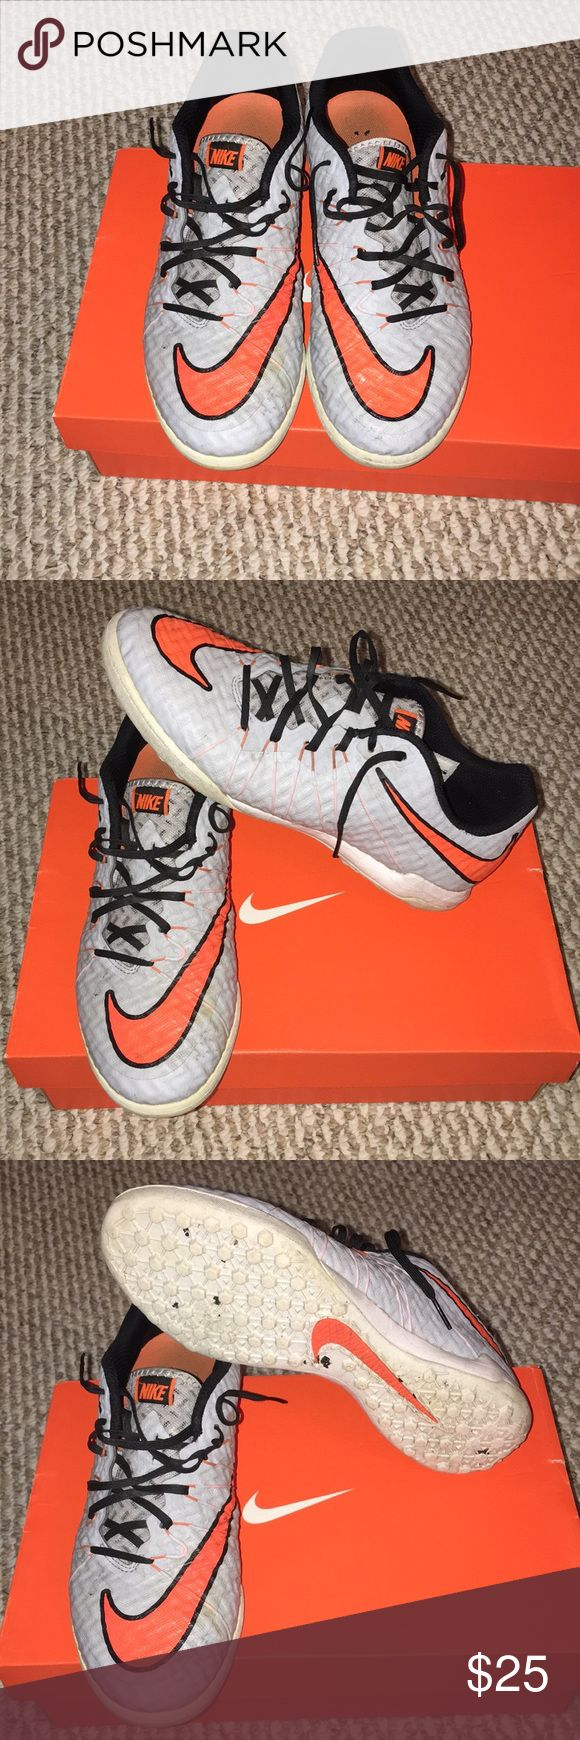 Nike Hypervenom Soccer Turf Shoes Nike Hypervenom Soccer Turf Shoes Gray and orange Used but still in good playing condition Nike Shoes Athletic Shoes